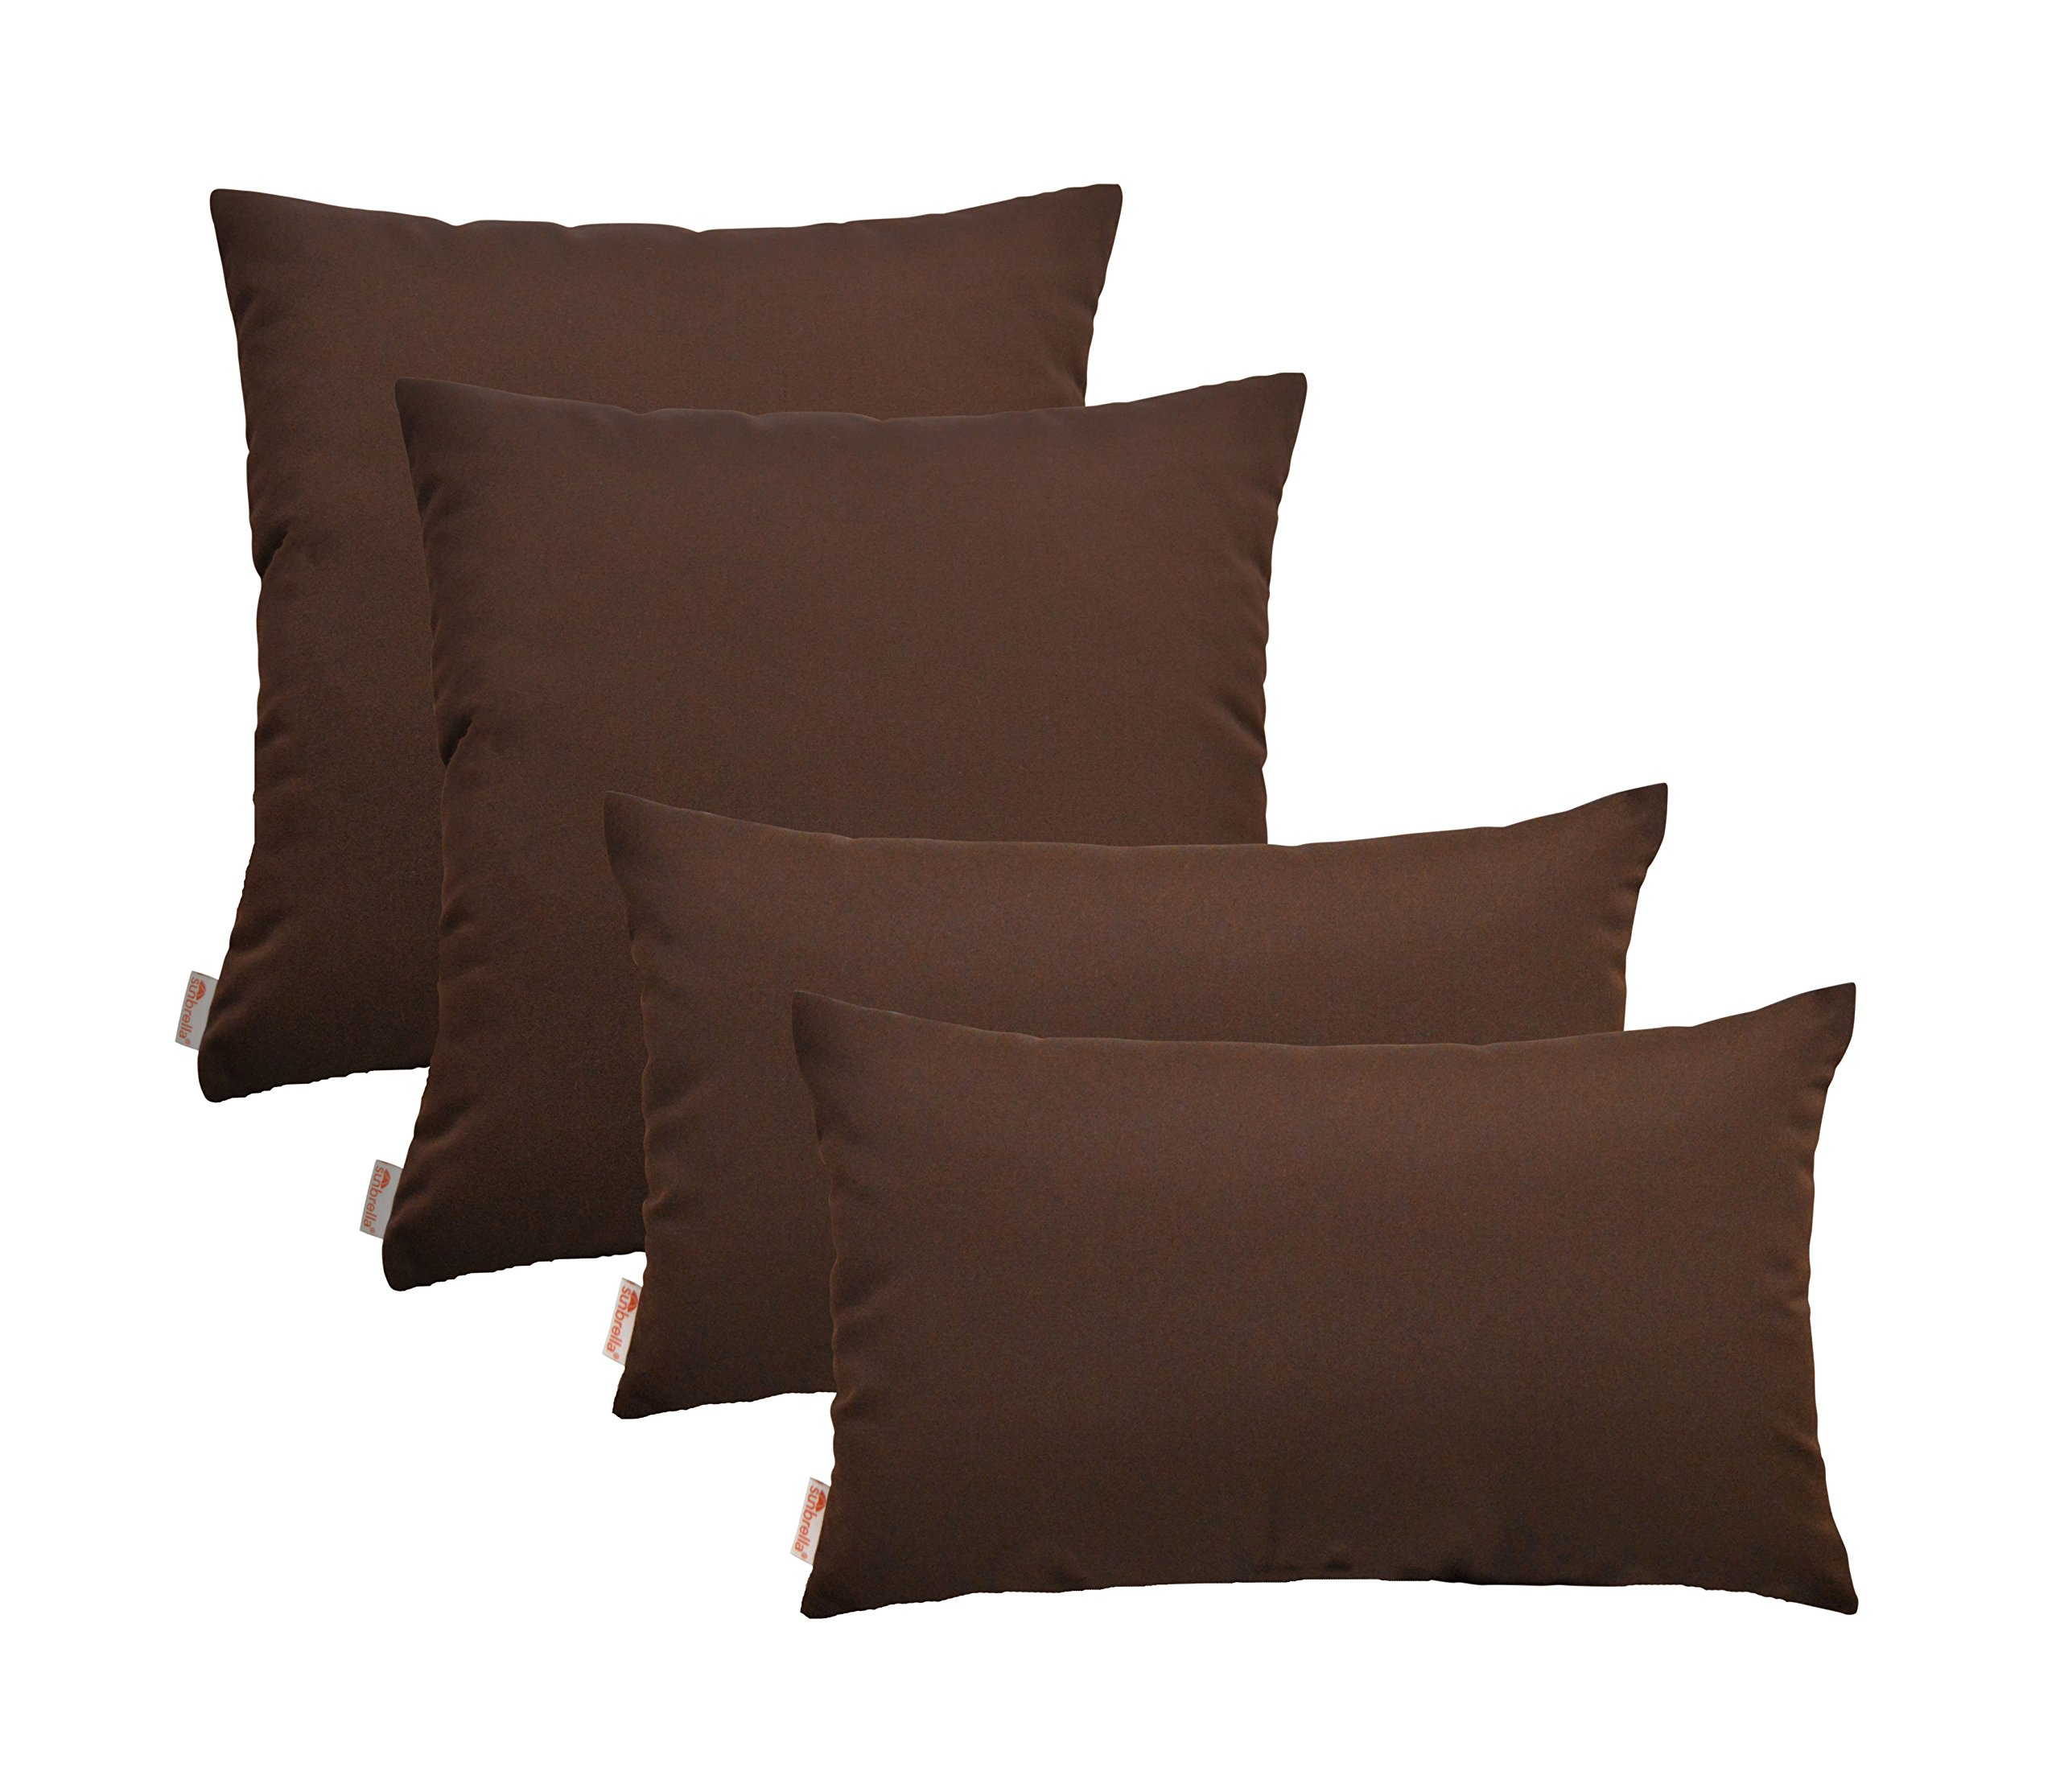 RSH Décor Set of 4 Indoor Outdoor Pillow- 17'' x 17'' + 12'' x 20'' Pillows- Sunbrella Bay Brown'